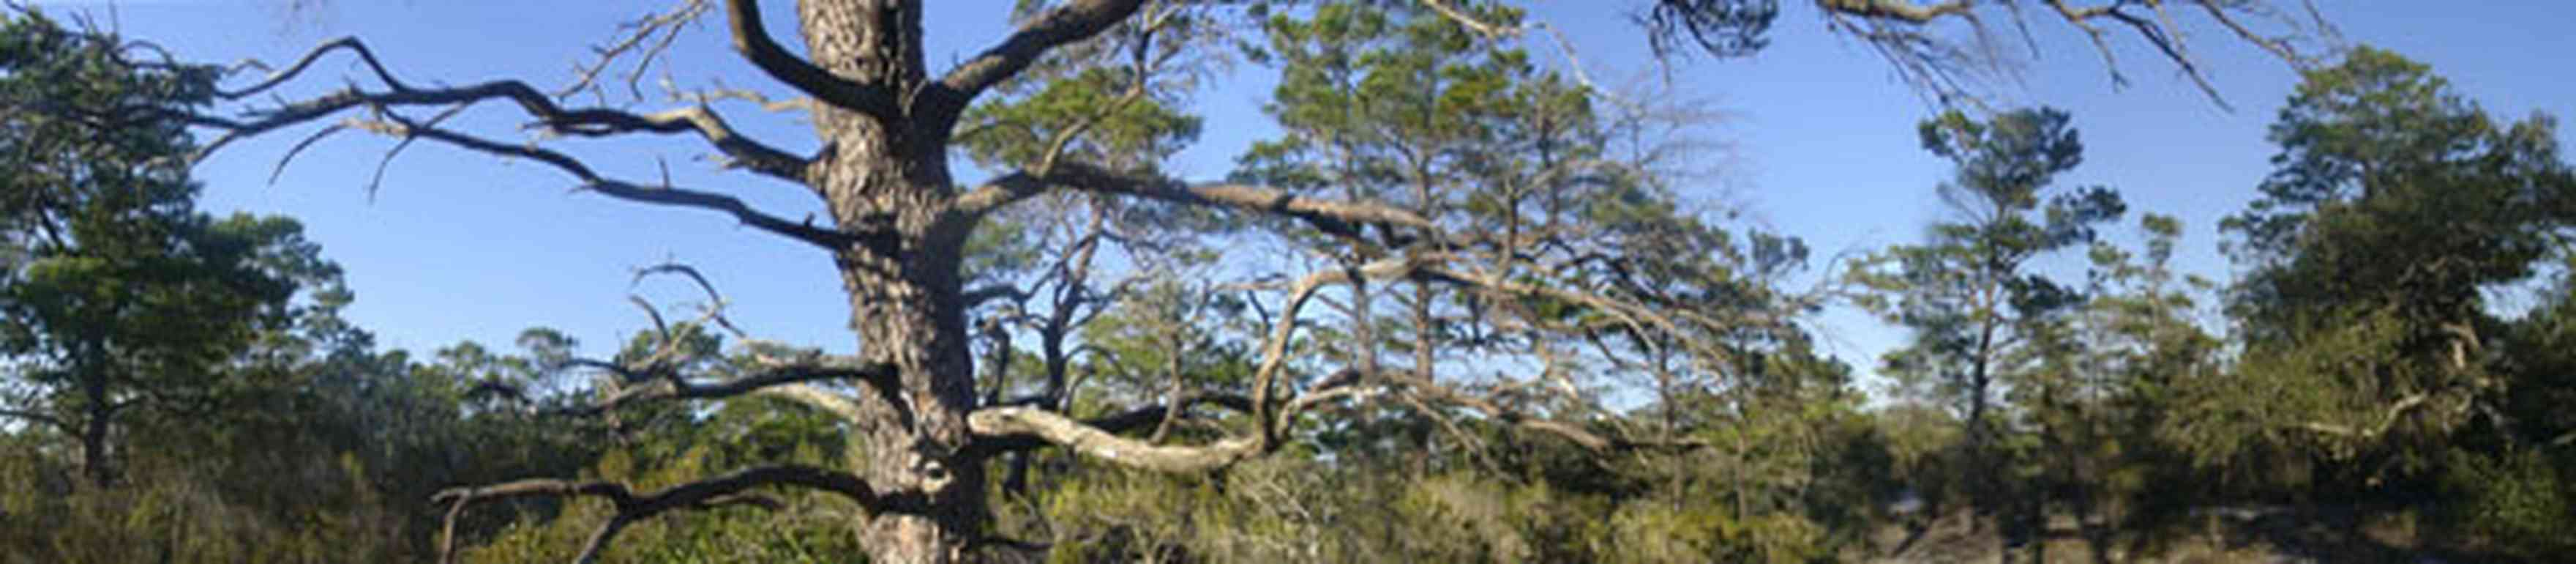 Perdido-Key:-Pine-Barrens_00.jpg:  pine tree, key, pine barrens, pine scrub forest, canopy of trees